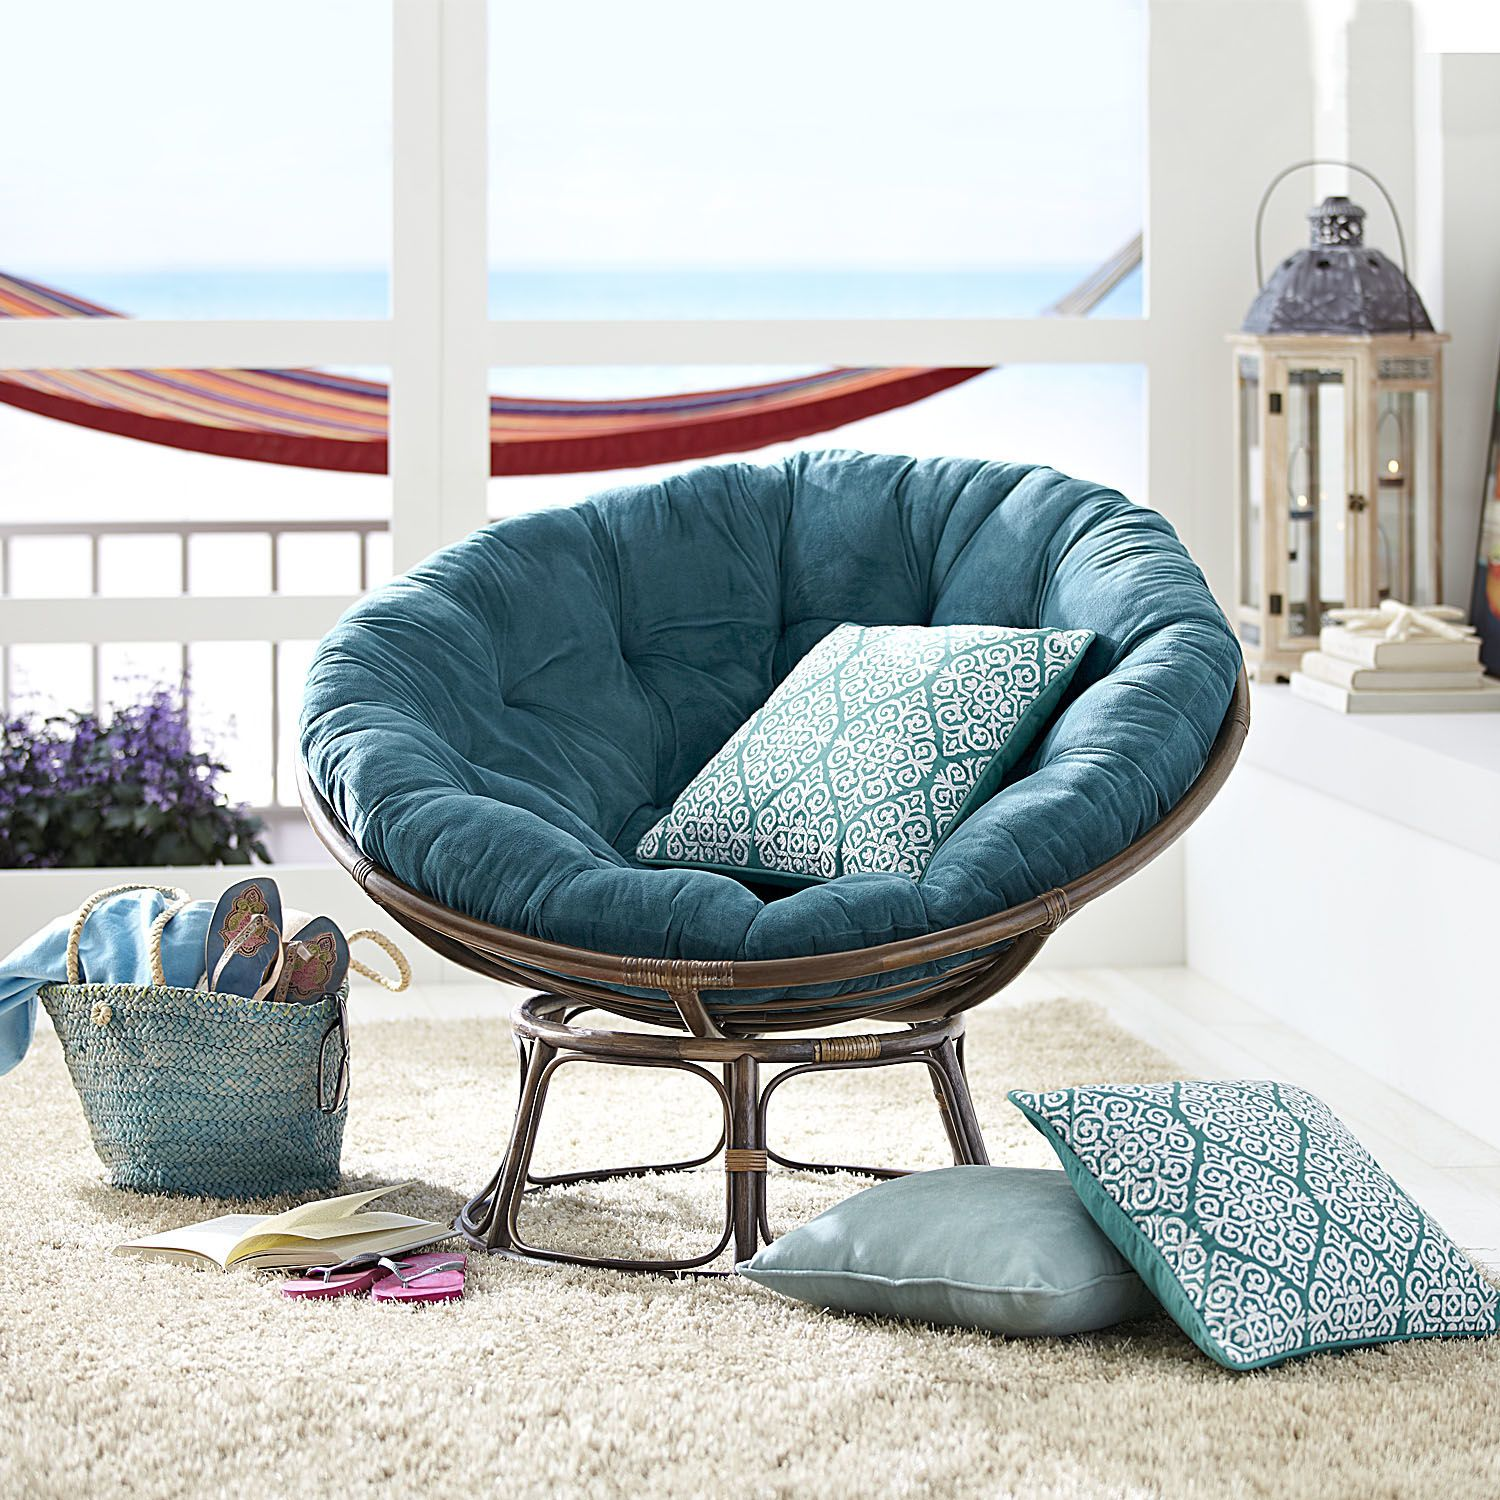 Papasan Cushion Plush Teal Pier 1 Imports Papasan